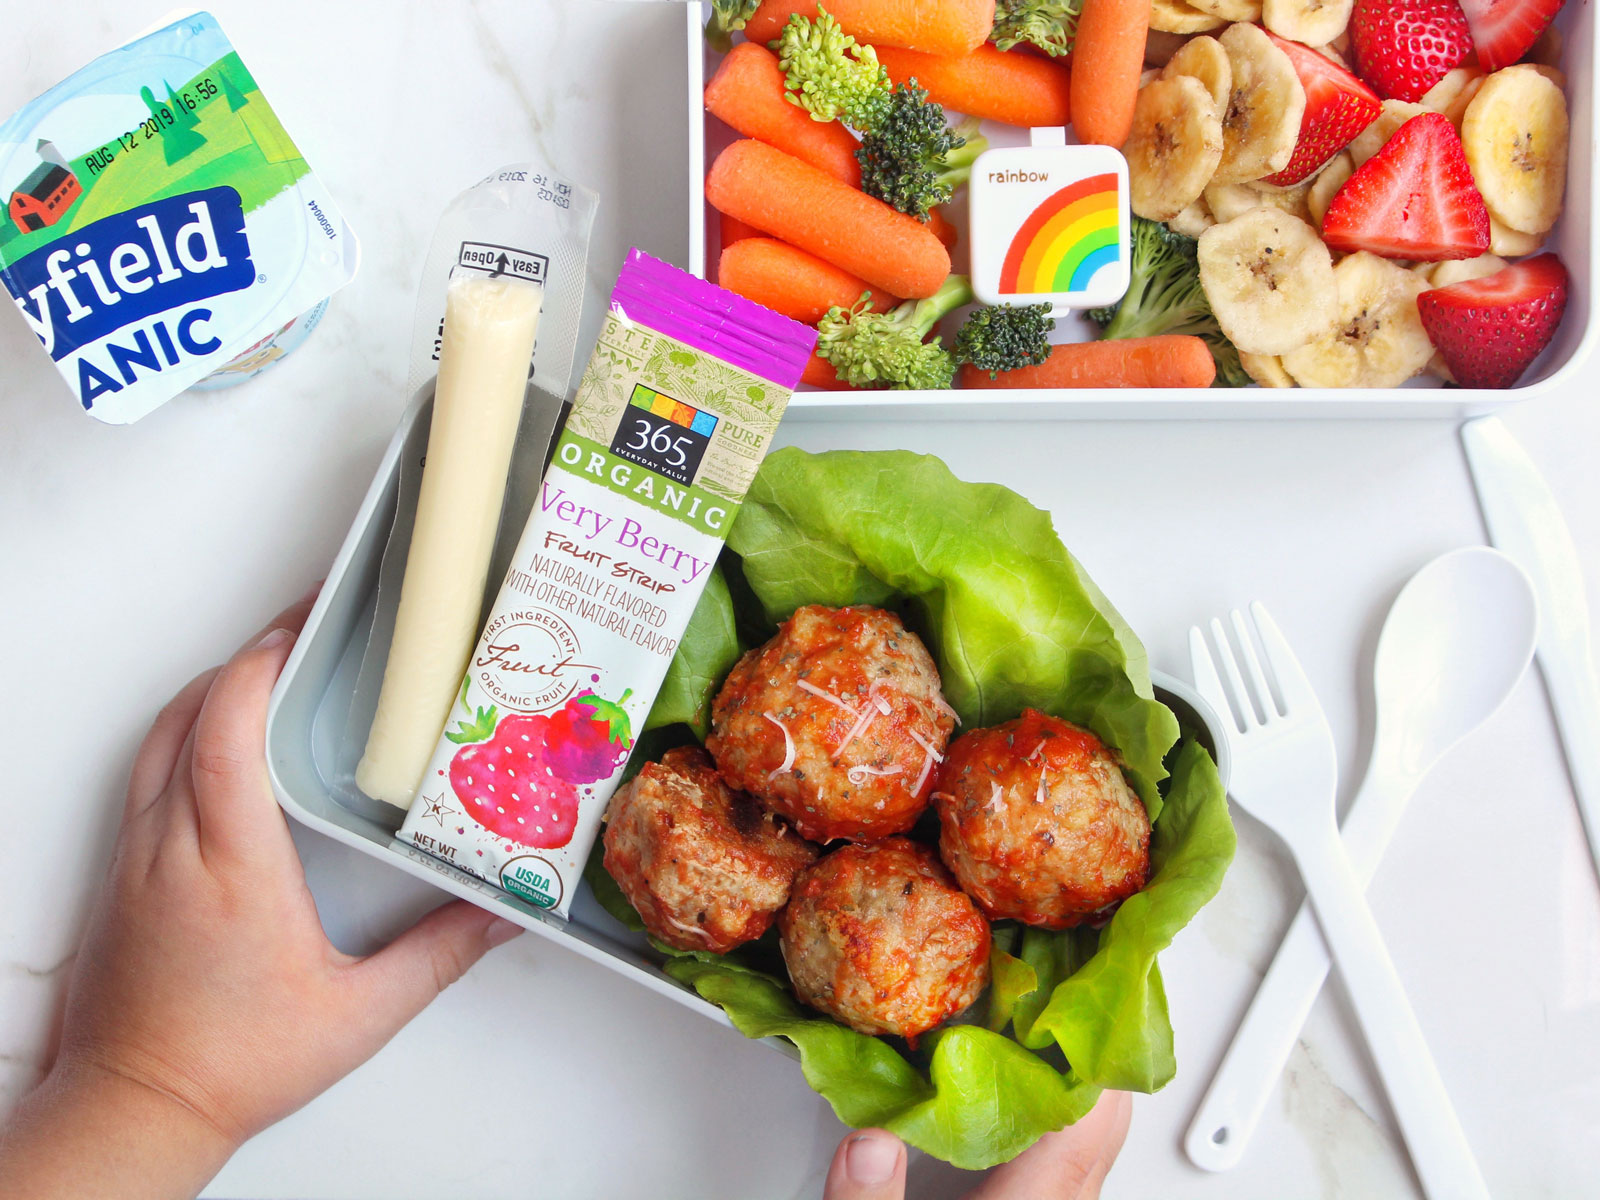 c9f3d0550491 Whole Foods Is Giving Away Bento Boxes and Gift Cards This Weekend ...